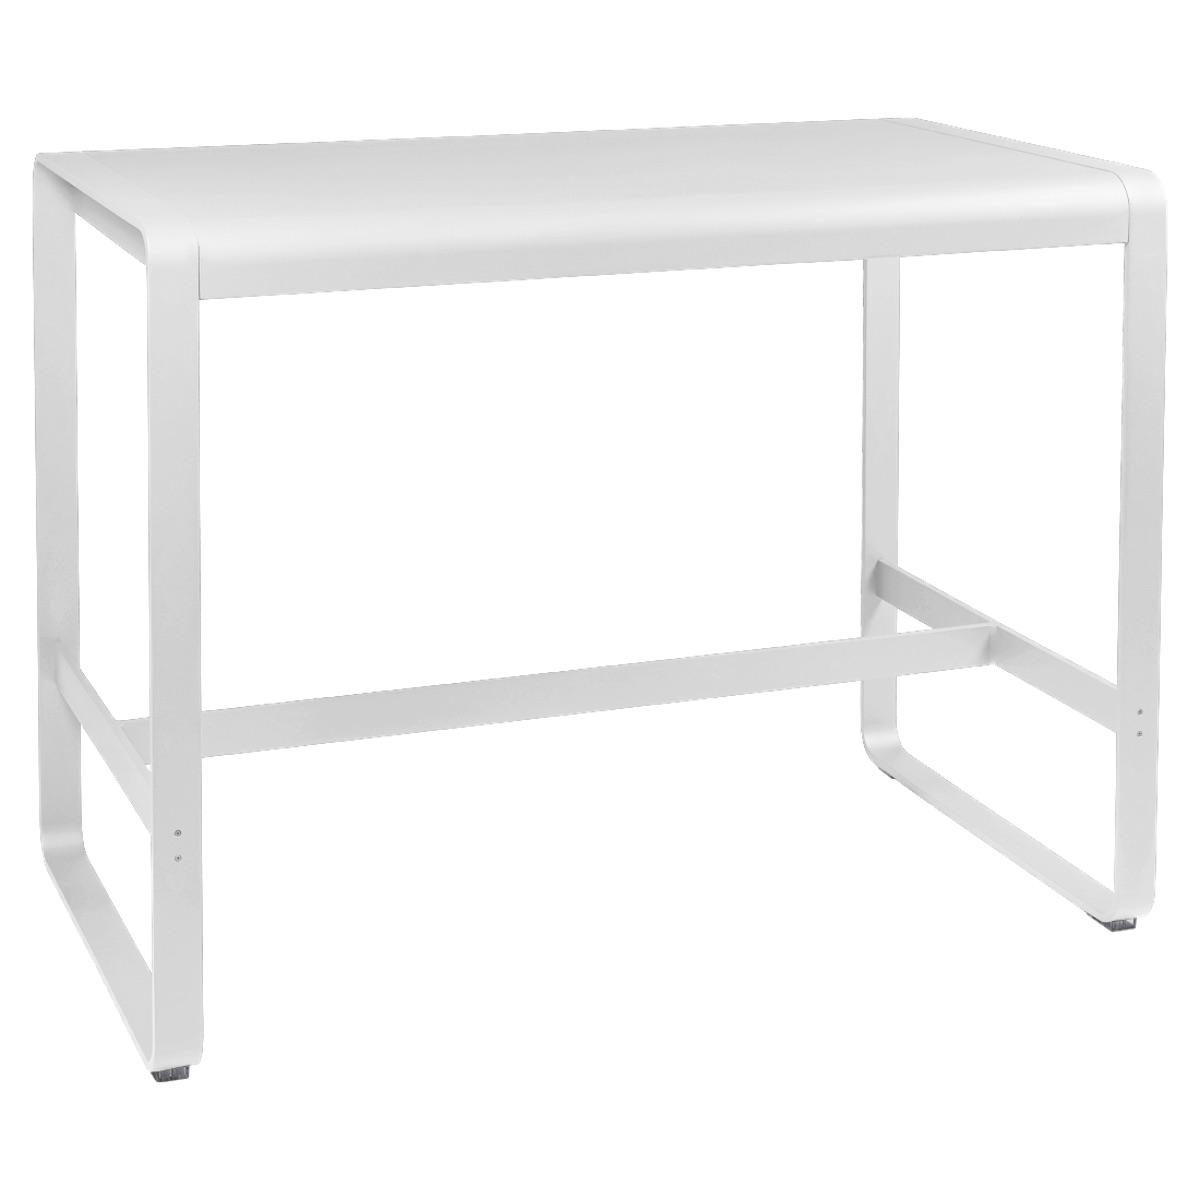 Table haute 80x140cm BELLEVIE Fermob coton